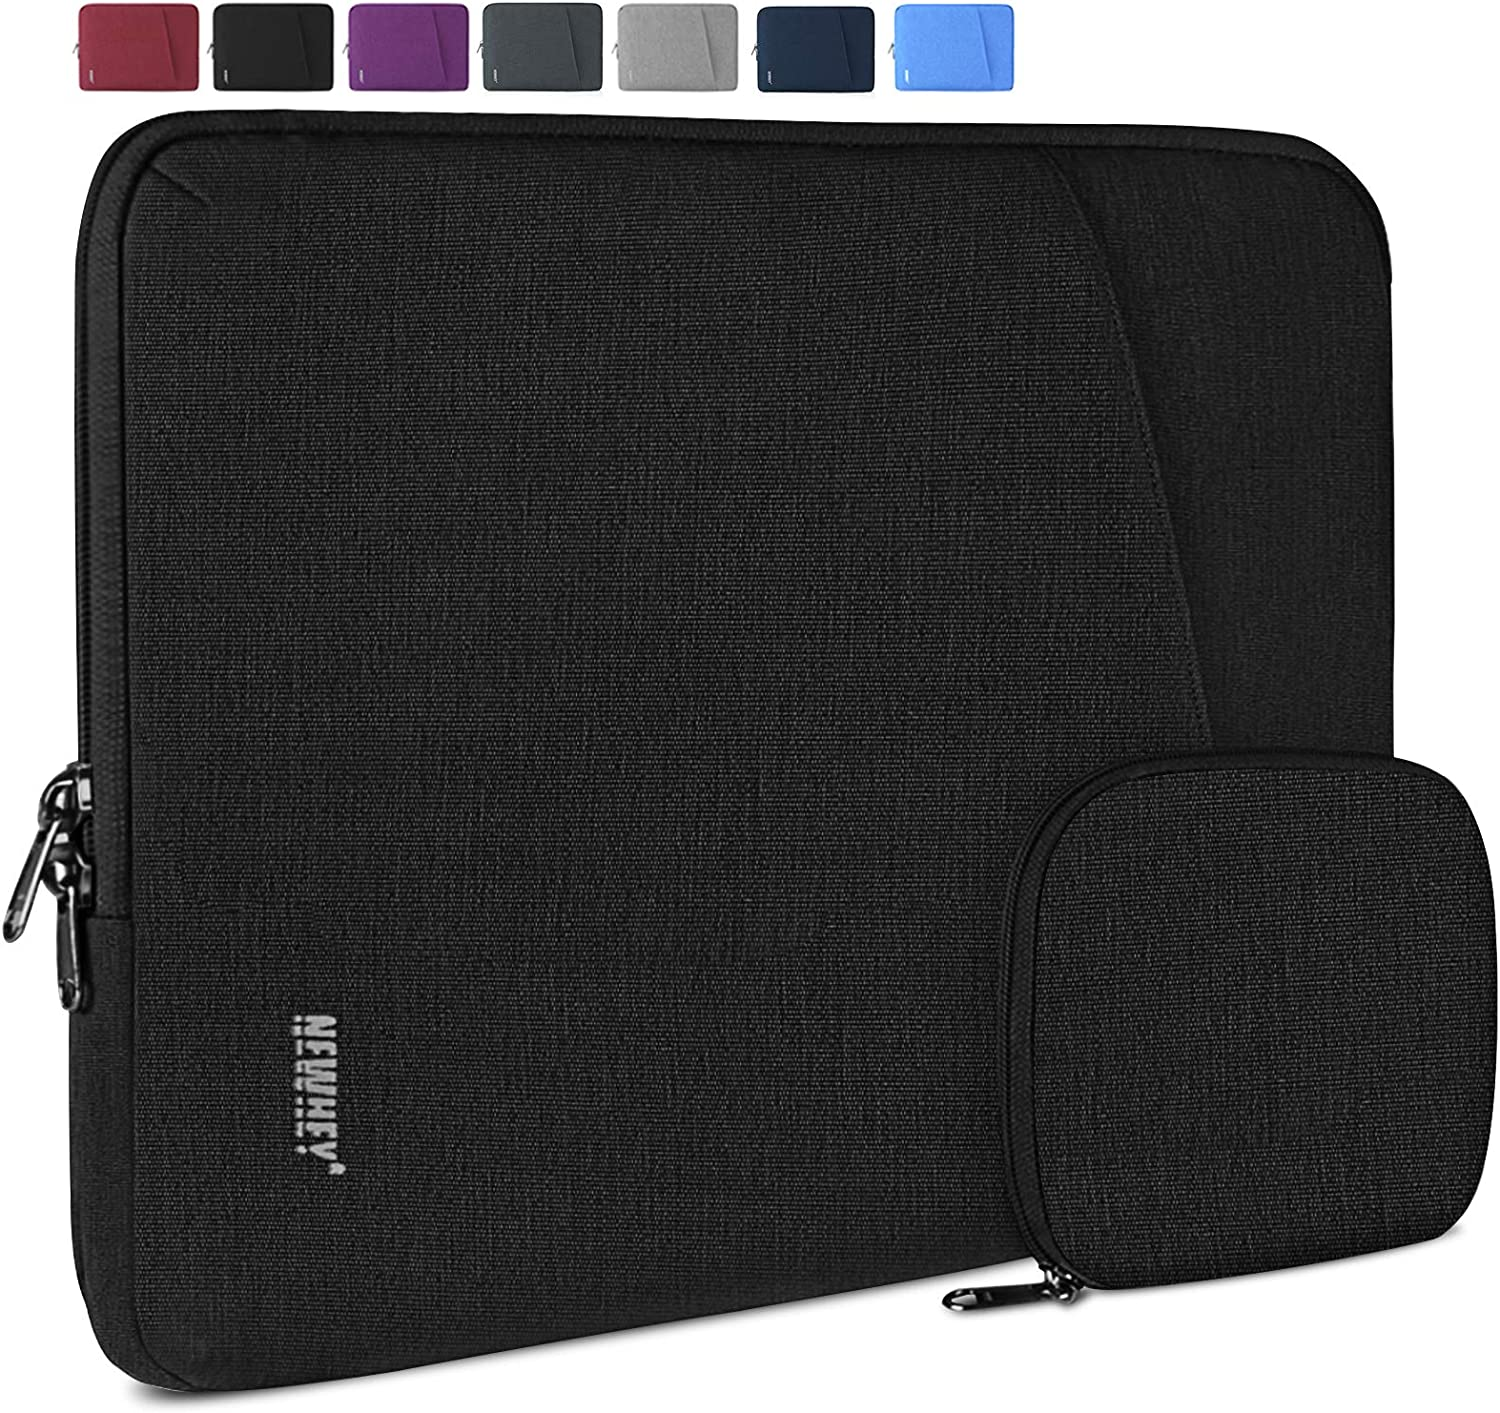 Laptop Sleeve Case 13-14 Inch Water-Resistant Business Computer Case Compatible with 13 Inch MacBook Air/Pro Notebook Protective Tablet Laptop Sleeve Bag for Men Women Black